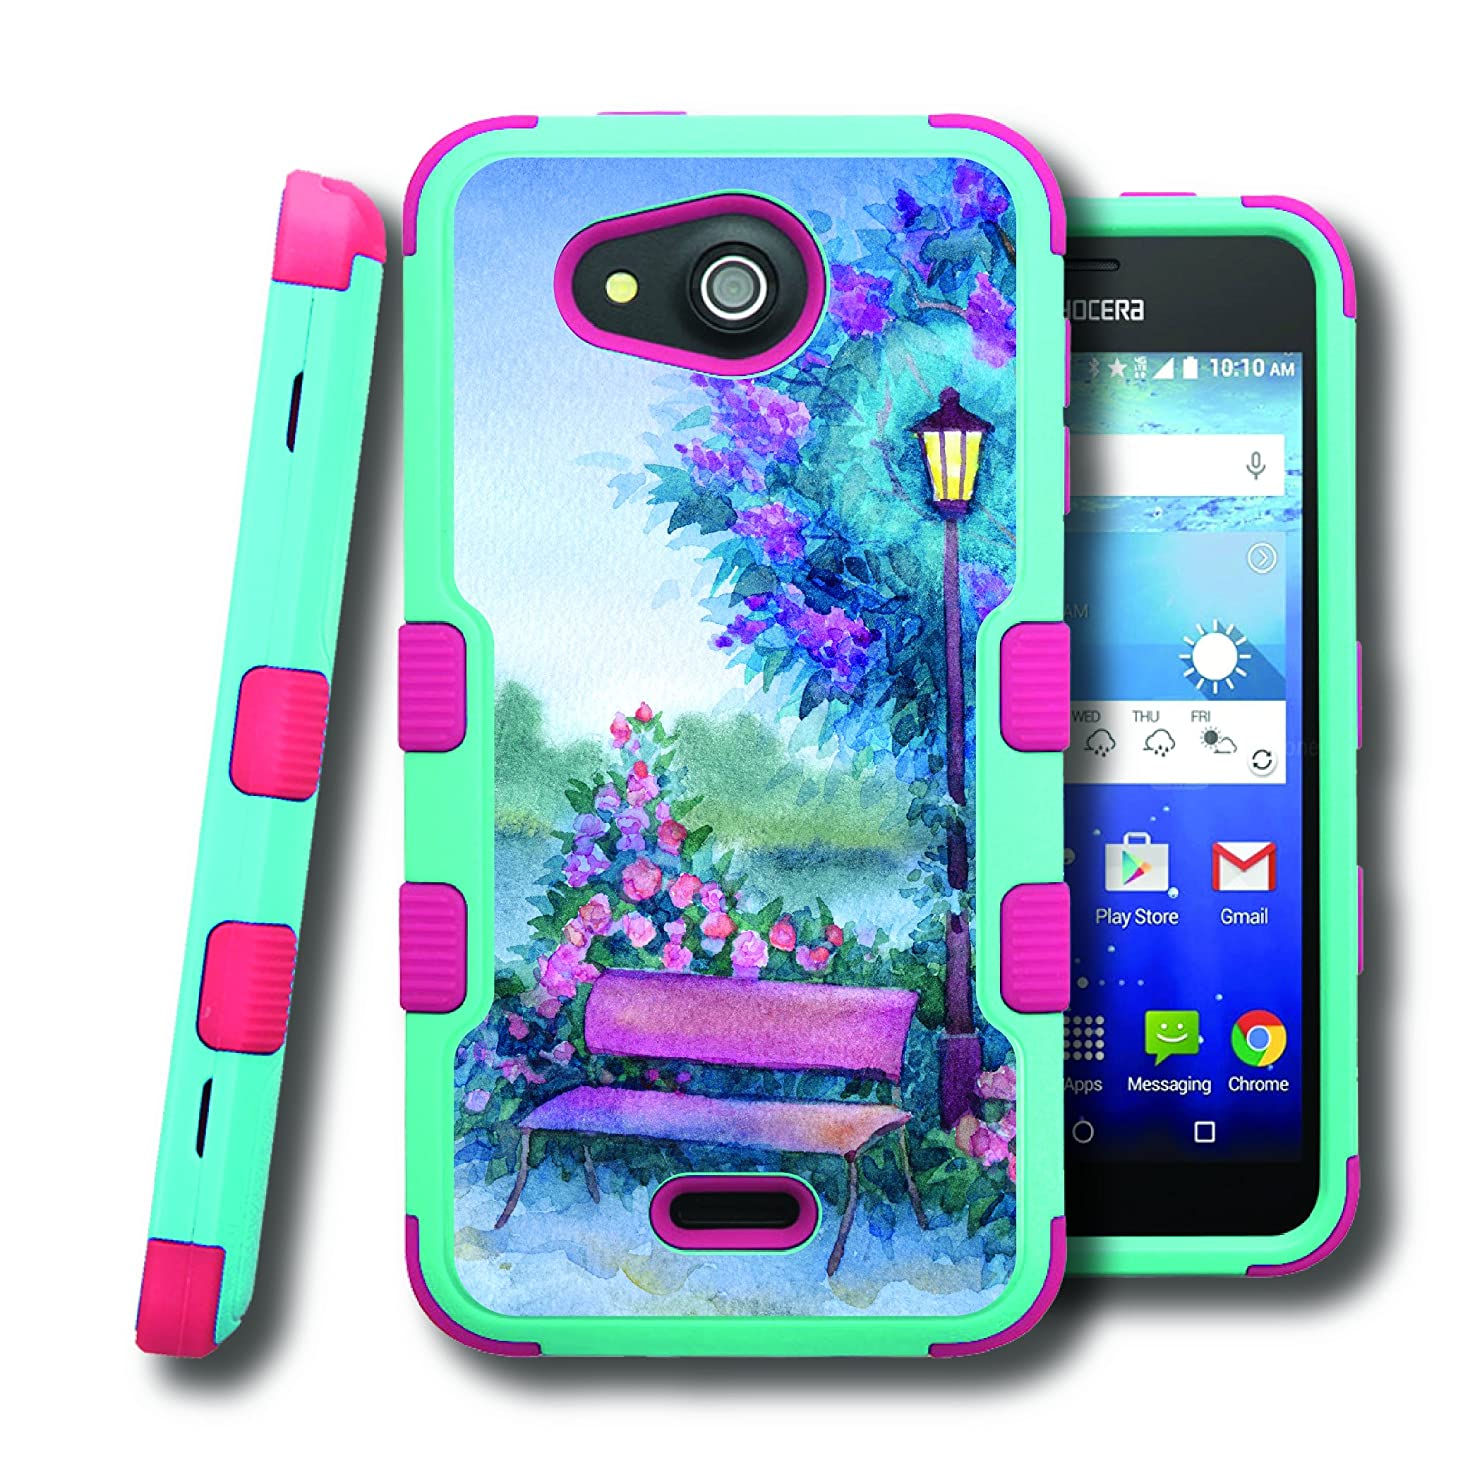 Hydro Wave Case, CASECREATOR[TM] For Kyocera Hydro Wave / Kyocera C6740 (T-Mobile, MetroPCS) -- NATURAL TUFF Hybrid Rubber Hard Snap-on Case Pink Teal Blue-Lamp Post Bench